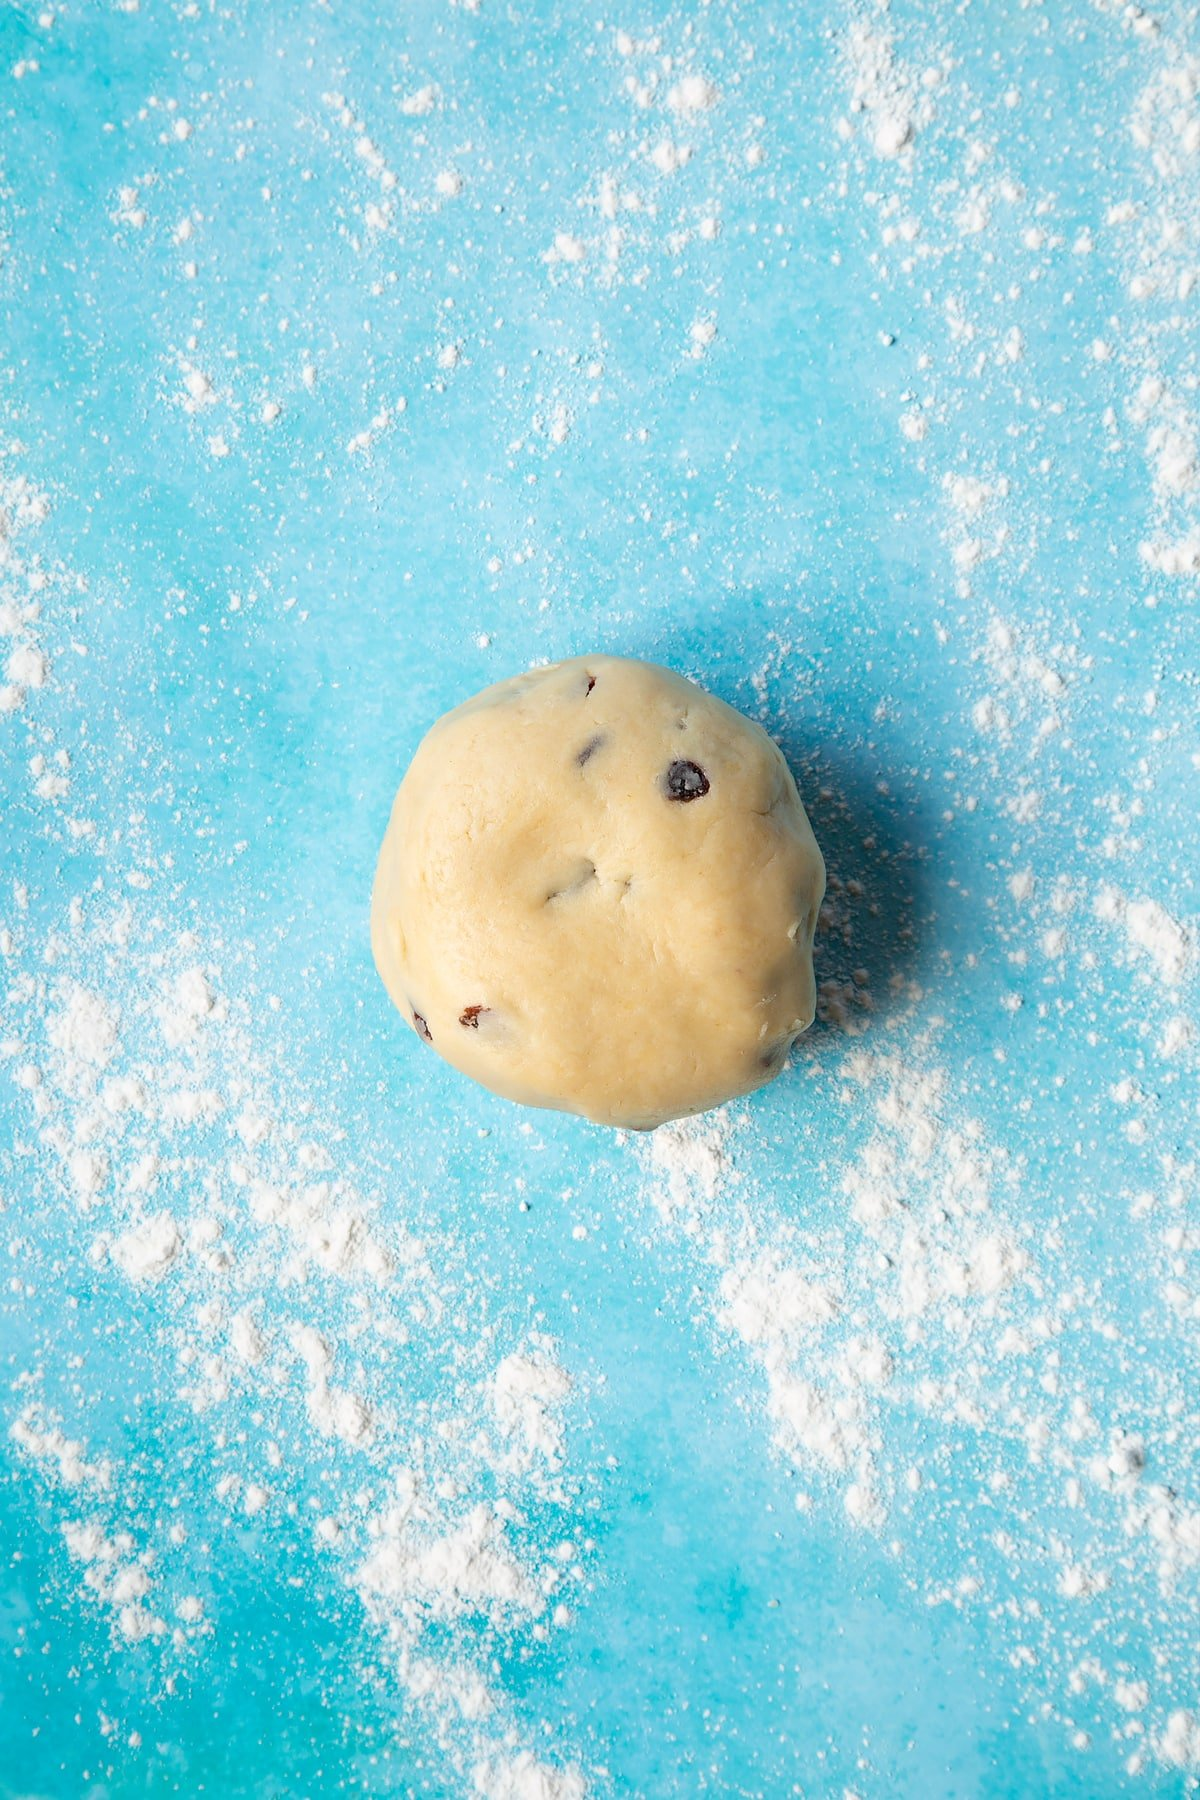 A Welsh cakes dough made from flour, butter, egg, sugar and sultanas on a floured surface.